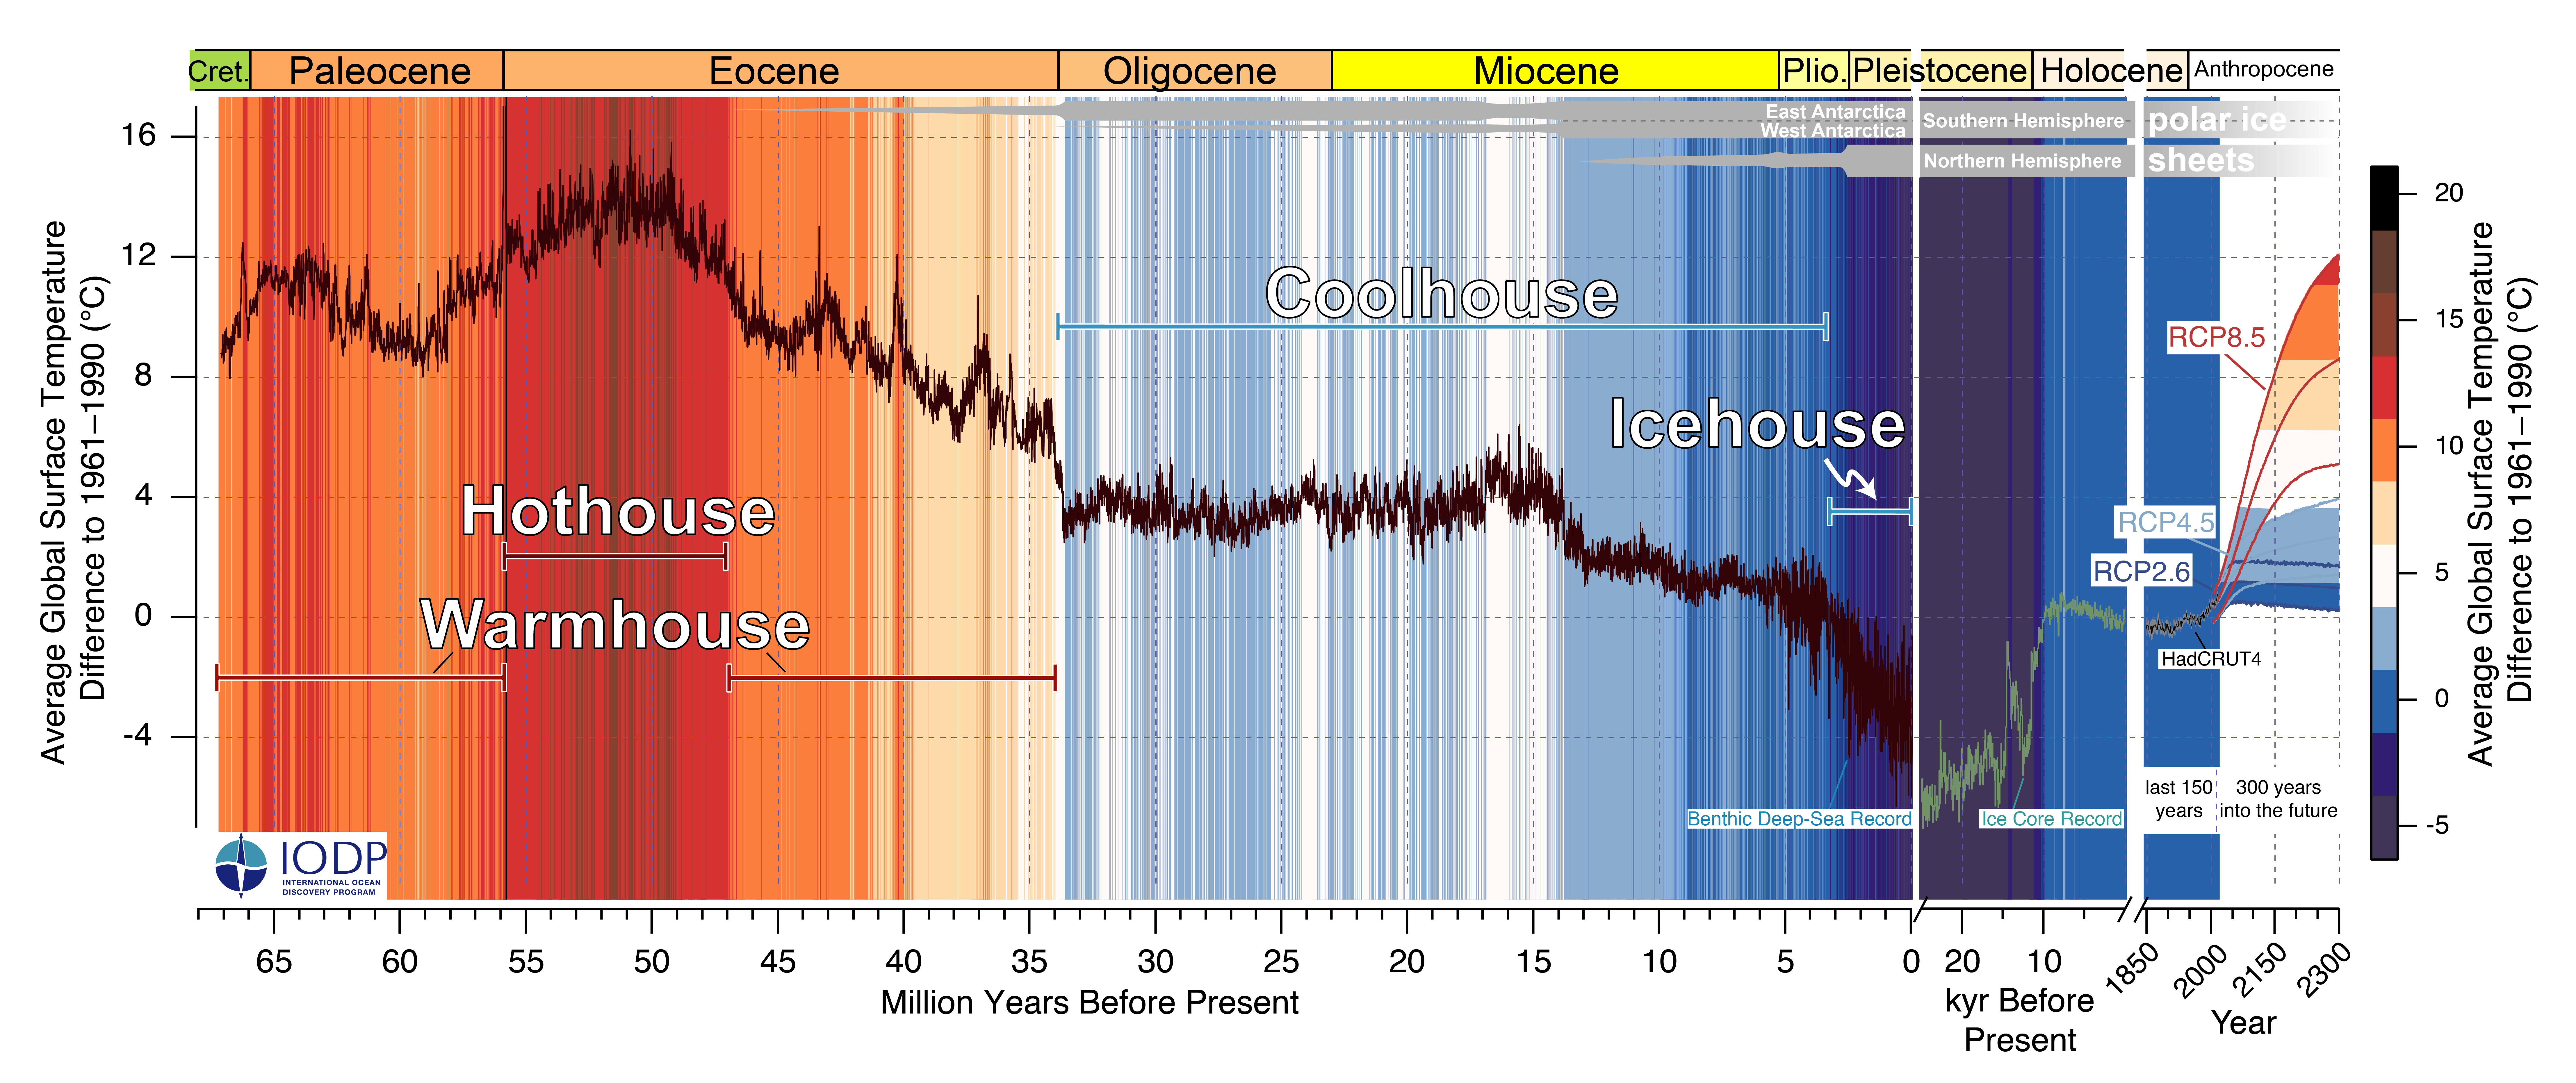 Image showing past and future trends in global mean temperature. Although there is a downward trend in temperature over million year timescales, the recent, and projected, anthropogenic warming is happening more rapidly than we have seen in the past.